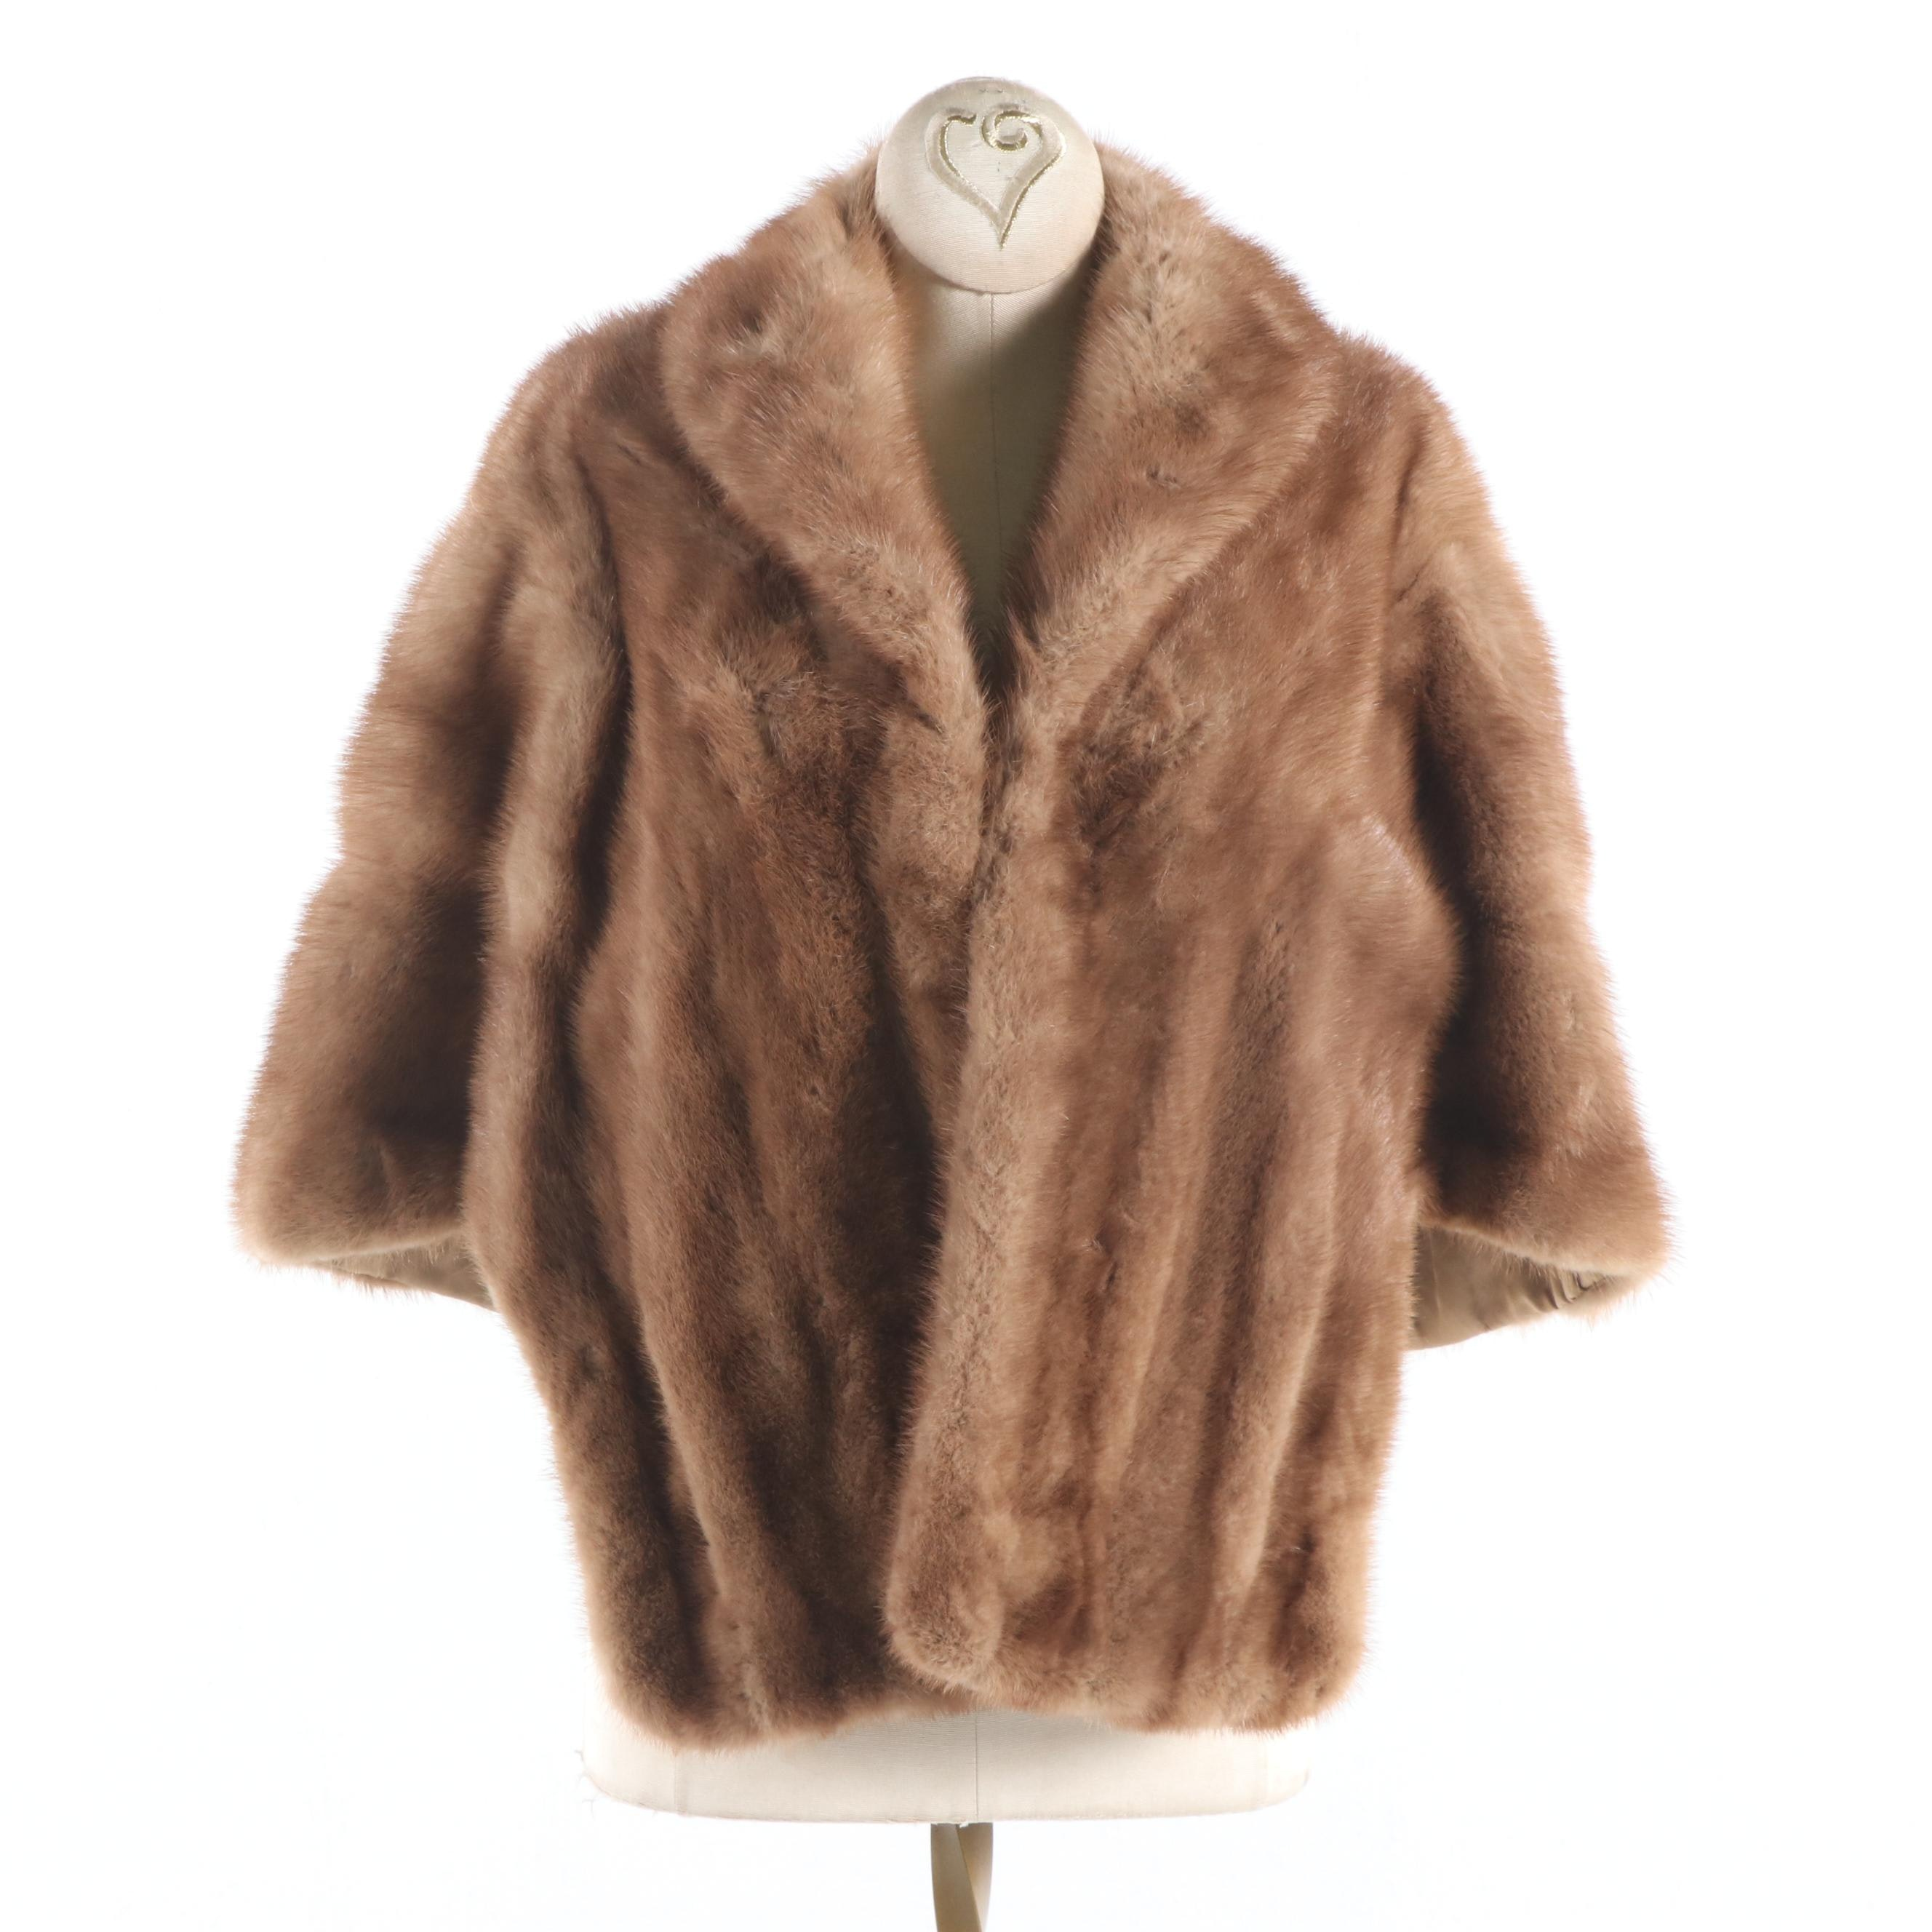 Women's McDaniels Emba Pastel Natural Brown Mink Fur Stole, Vintage